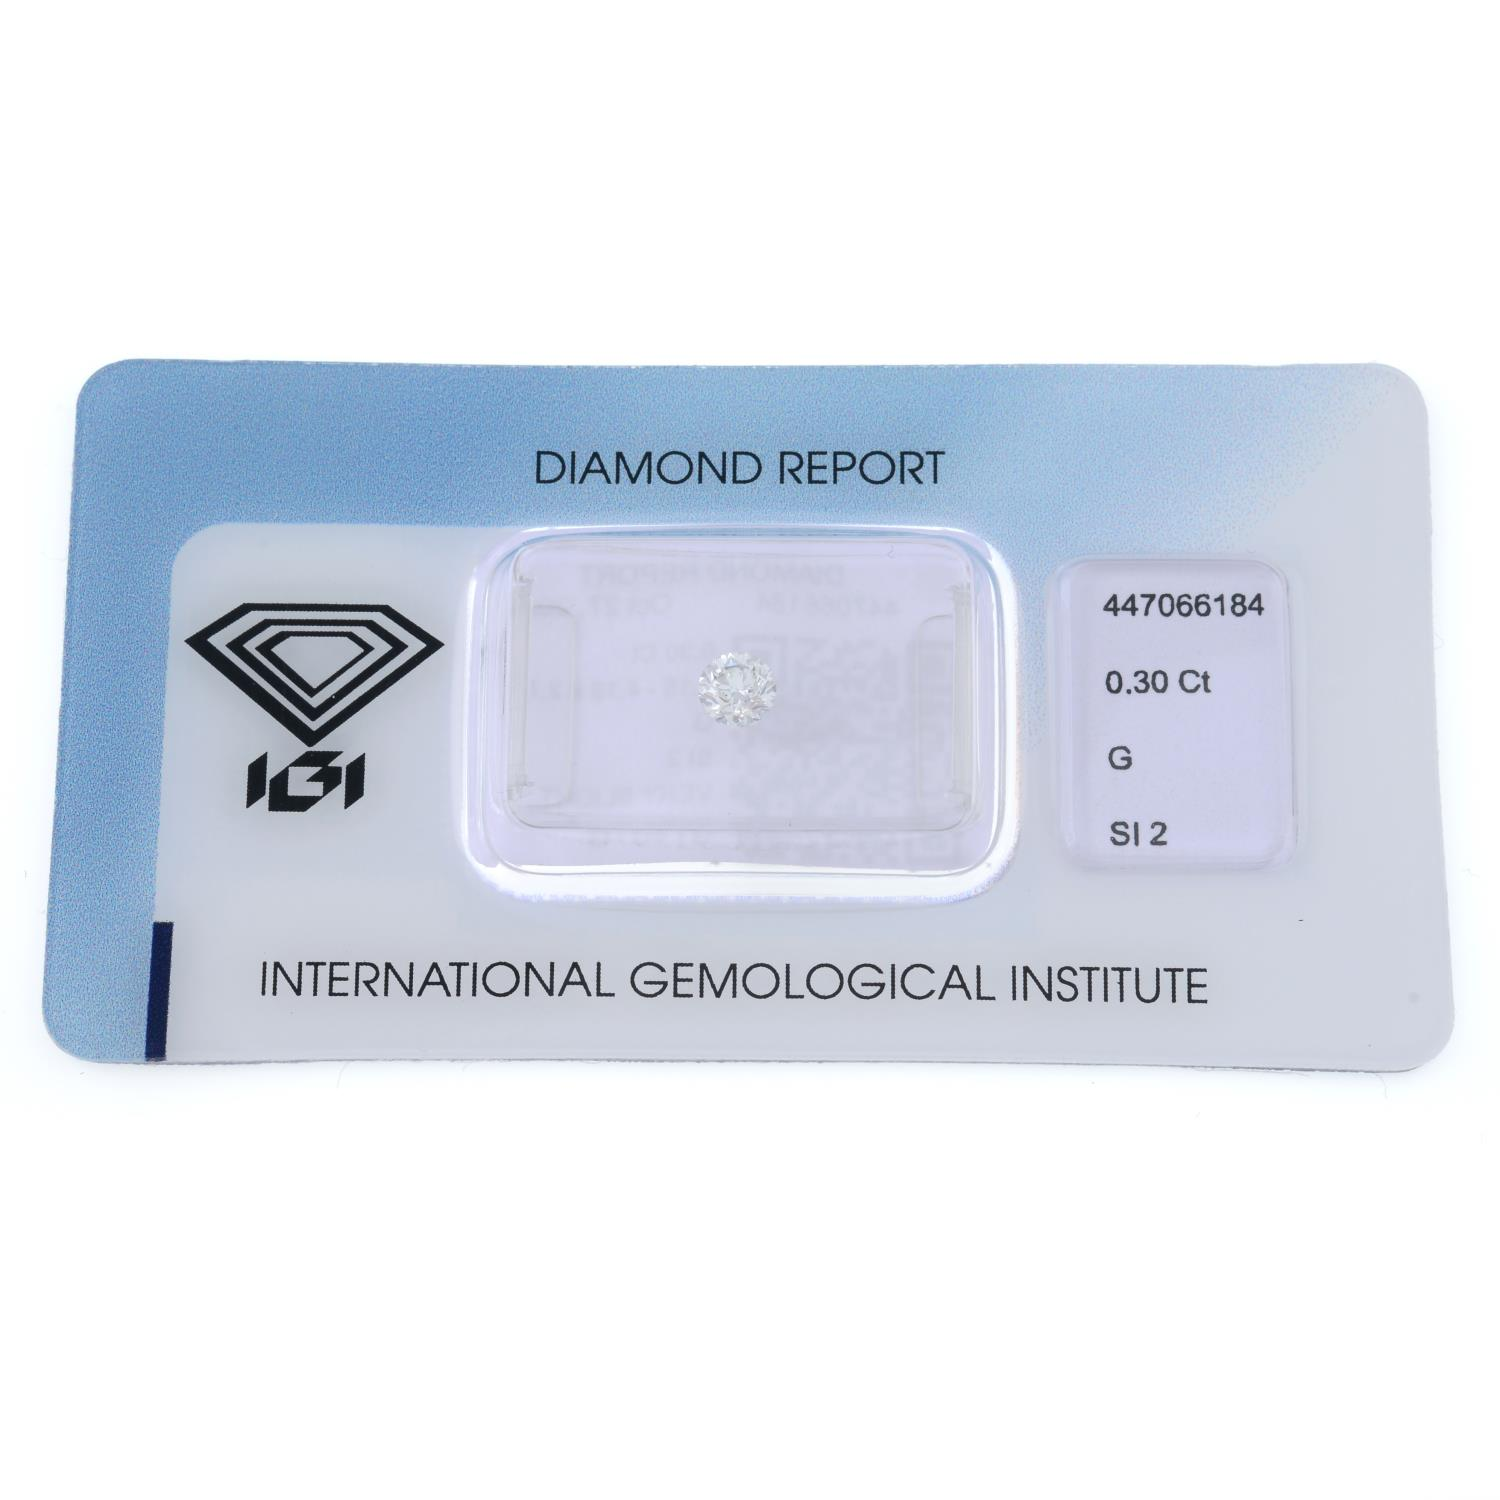 A brilliant cut diamond, weighing 0.30ct, measuring 4.15 by 4.18 by 2.74mms. - Image 2 of 4